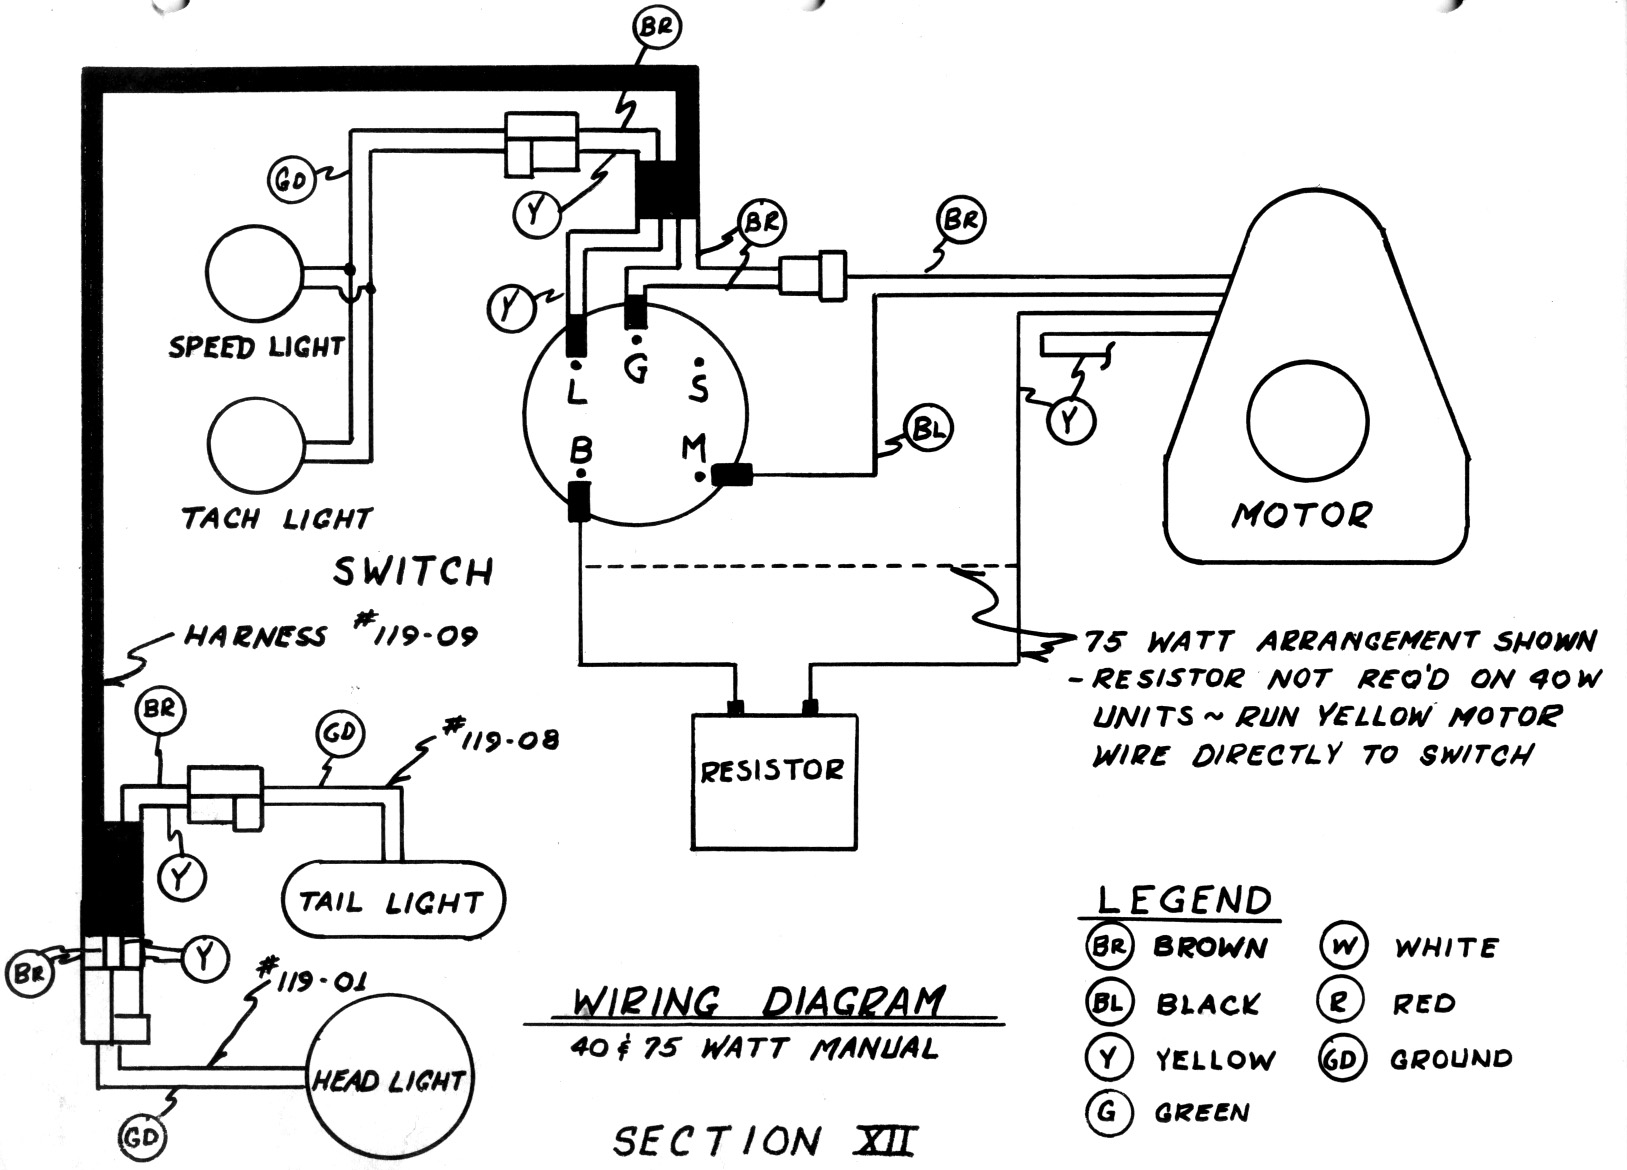 1969_VIKING_MANUAL_MAY_2011_1